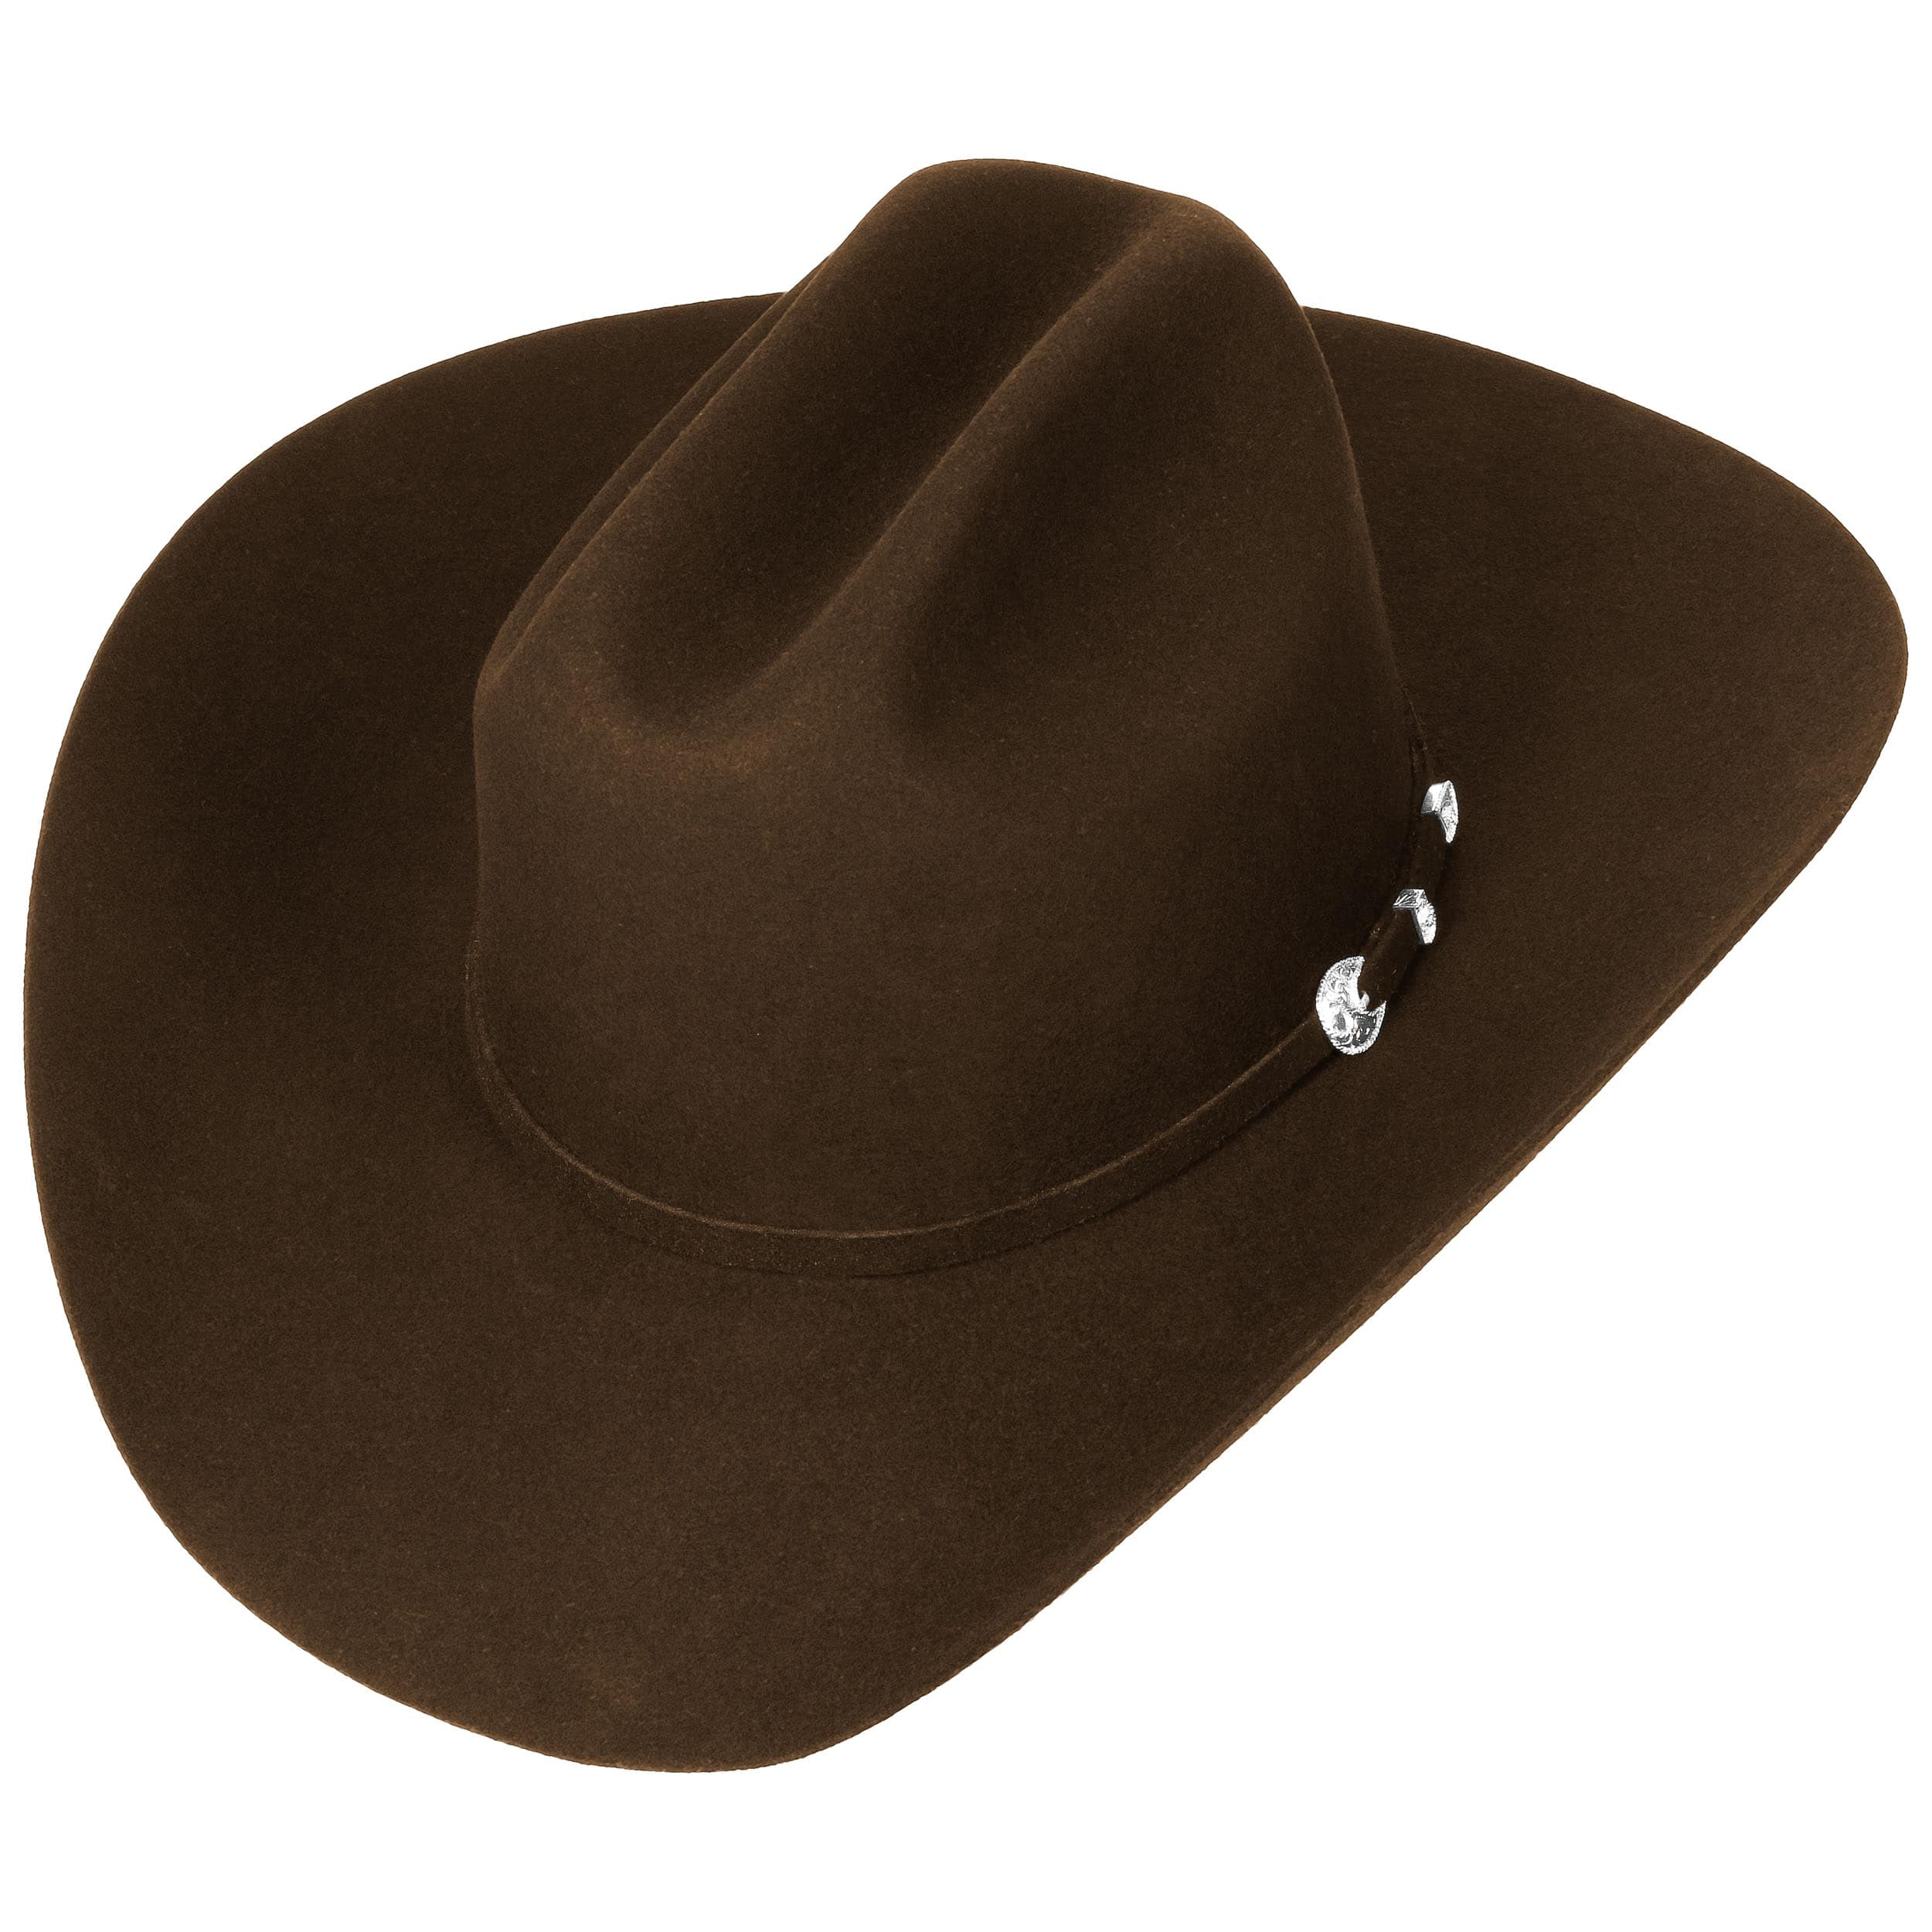 vendible especial para zapato ahorre hasta 60% The Valley 4X Western Hat by Stetson